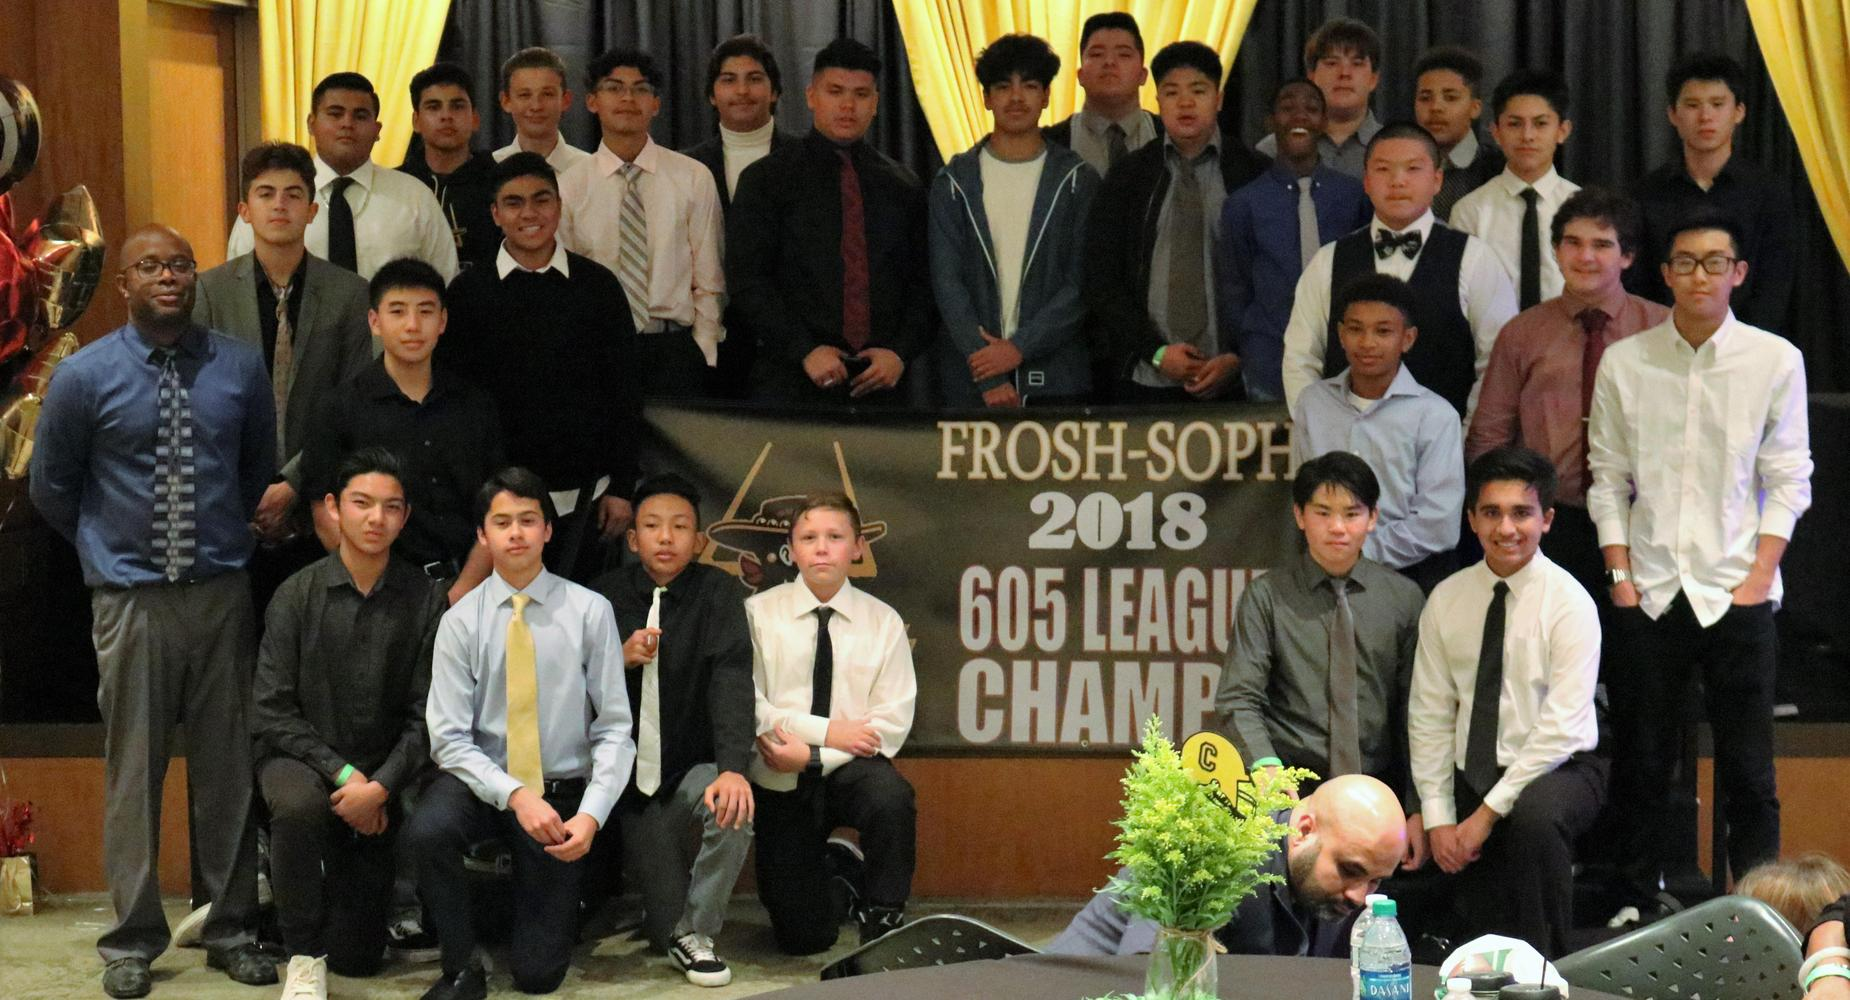 Football Banquet Pictures